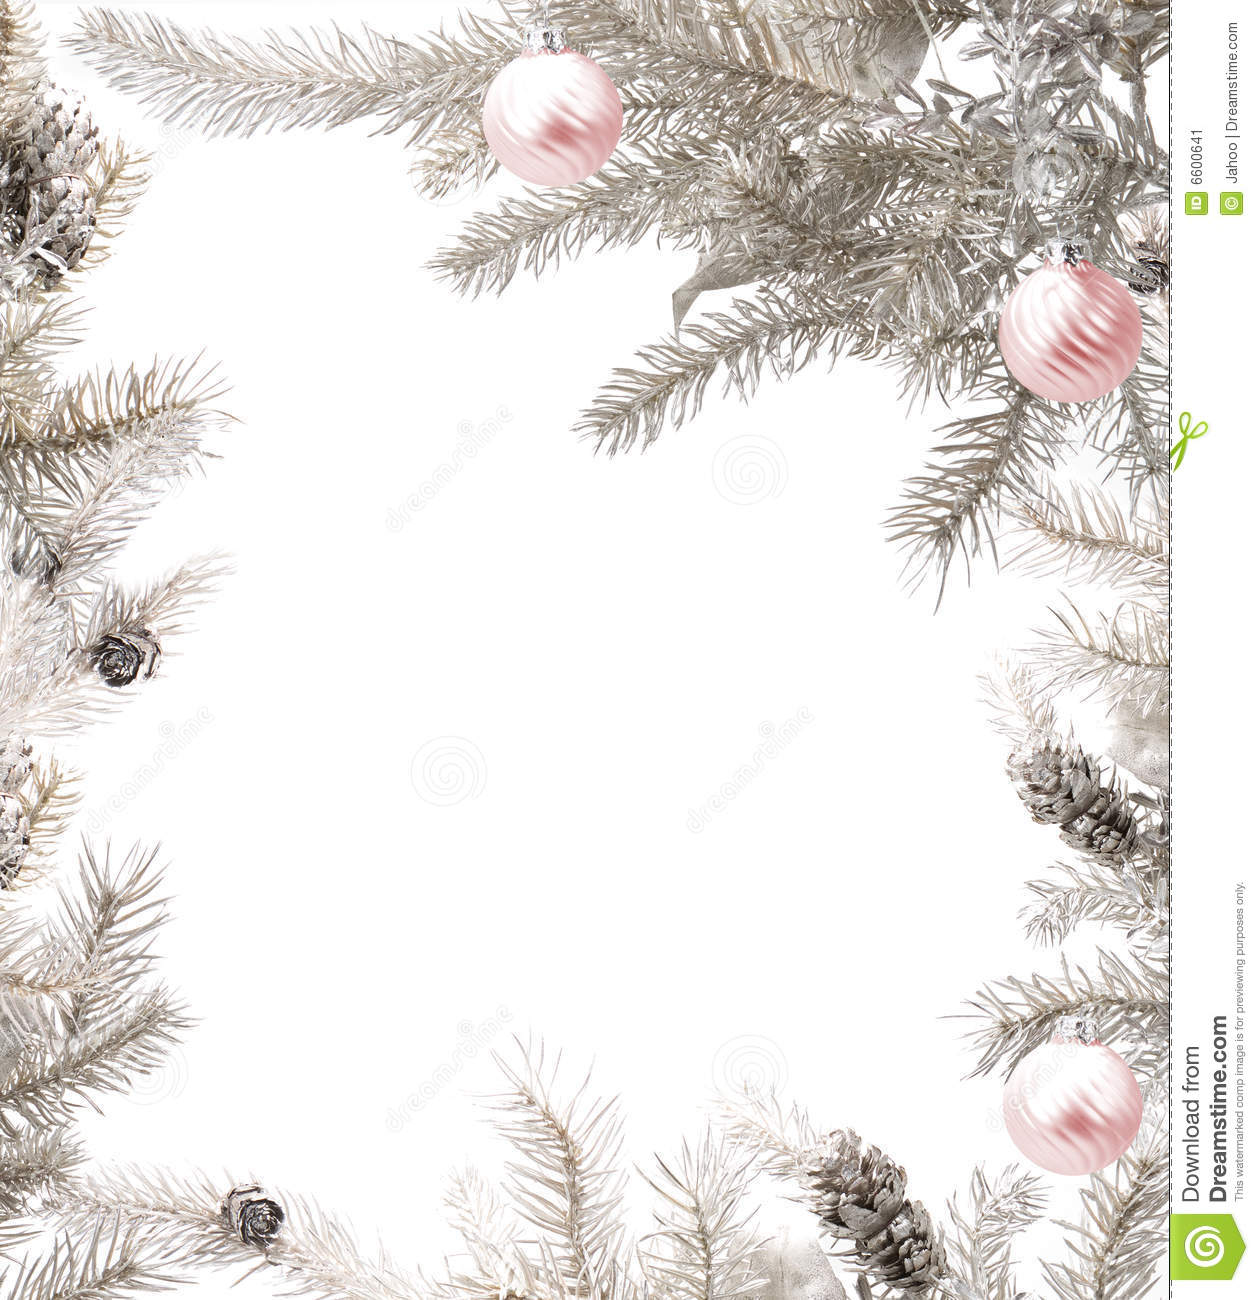 Christmas Frame.Silver Christmas Frame With Pink Baubles Stock Image Image